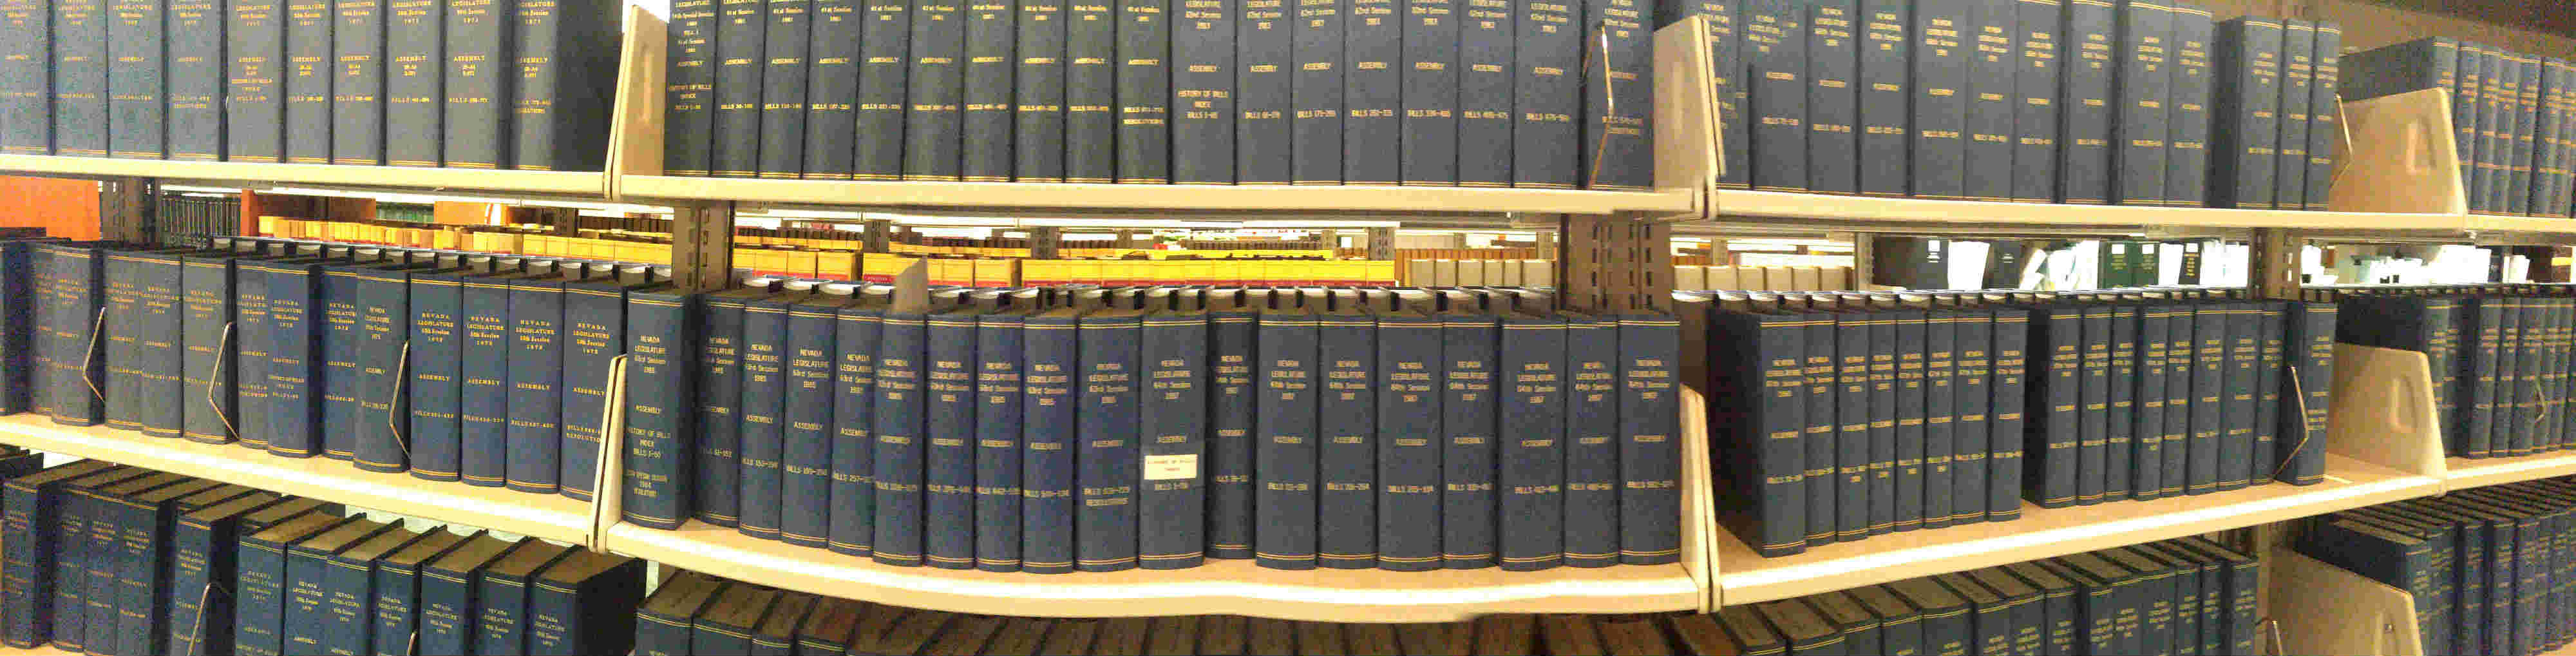 Shelves of reference books